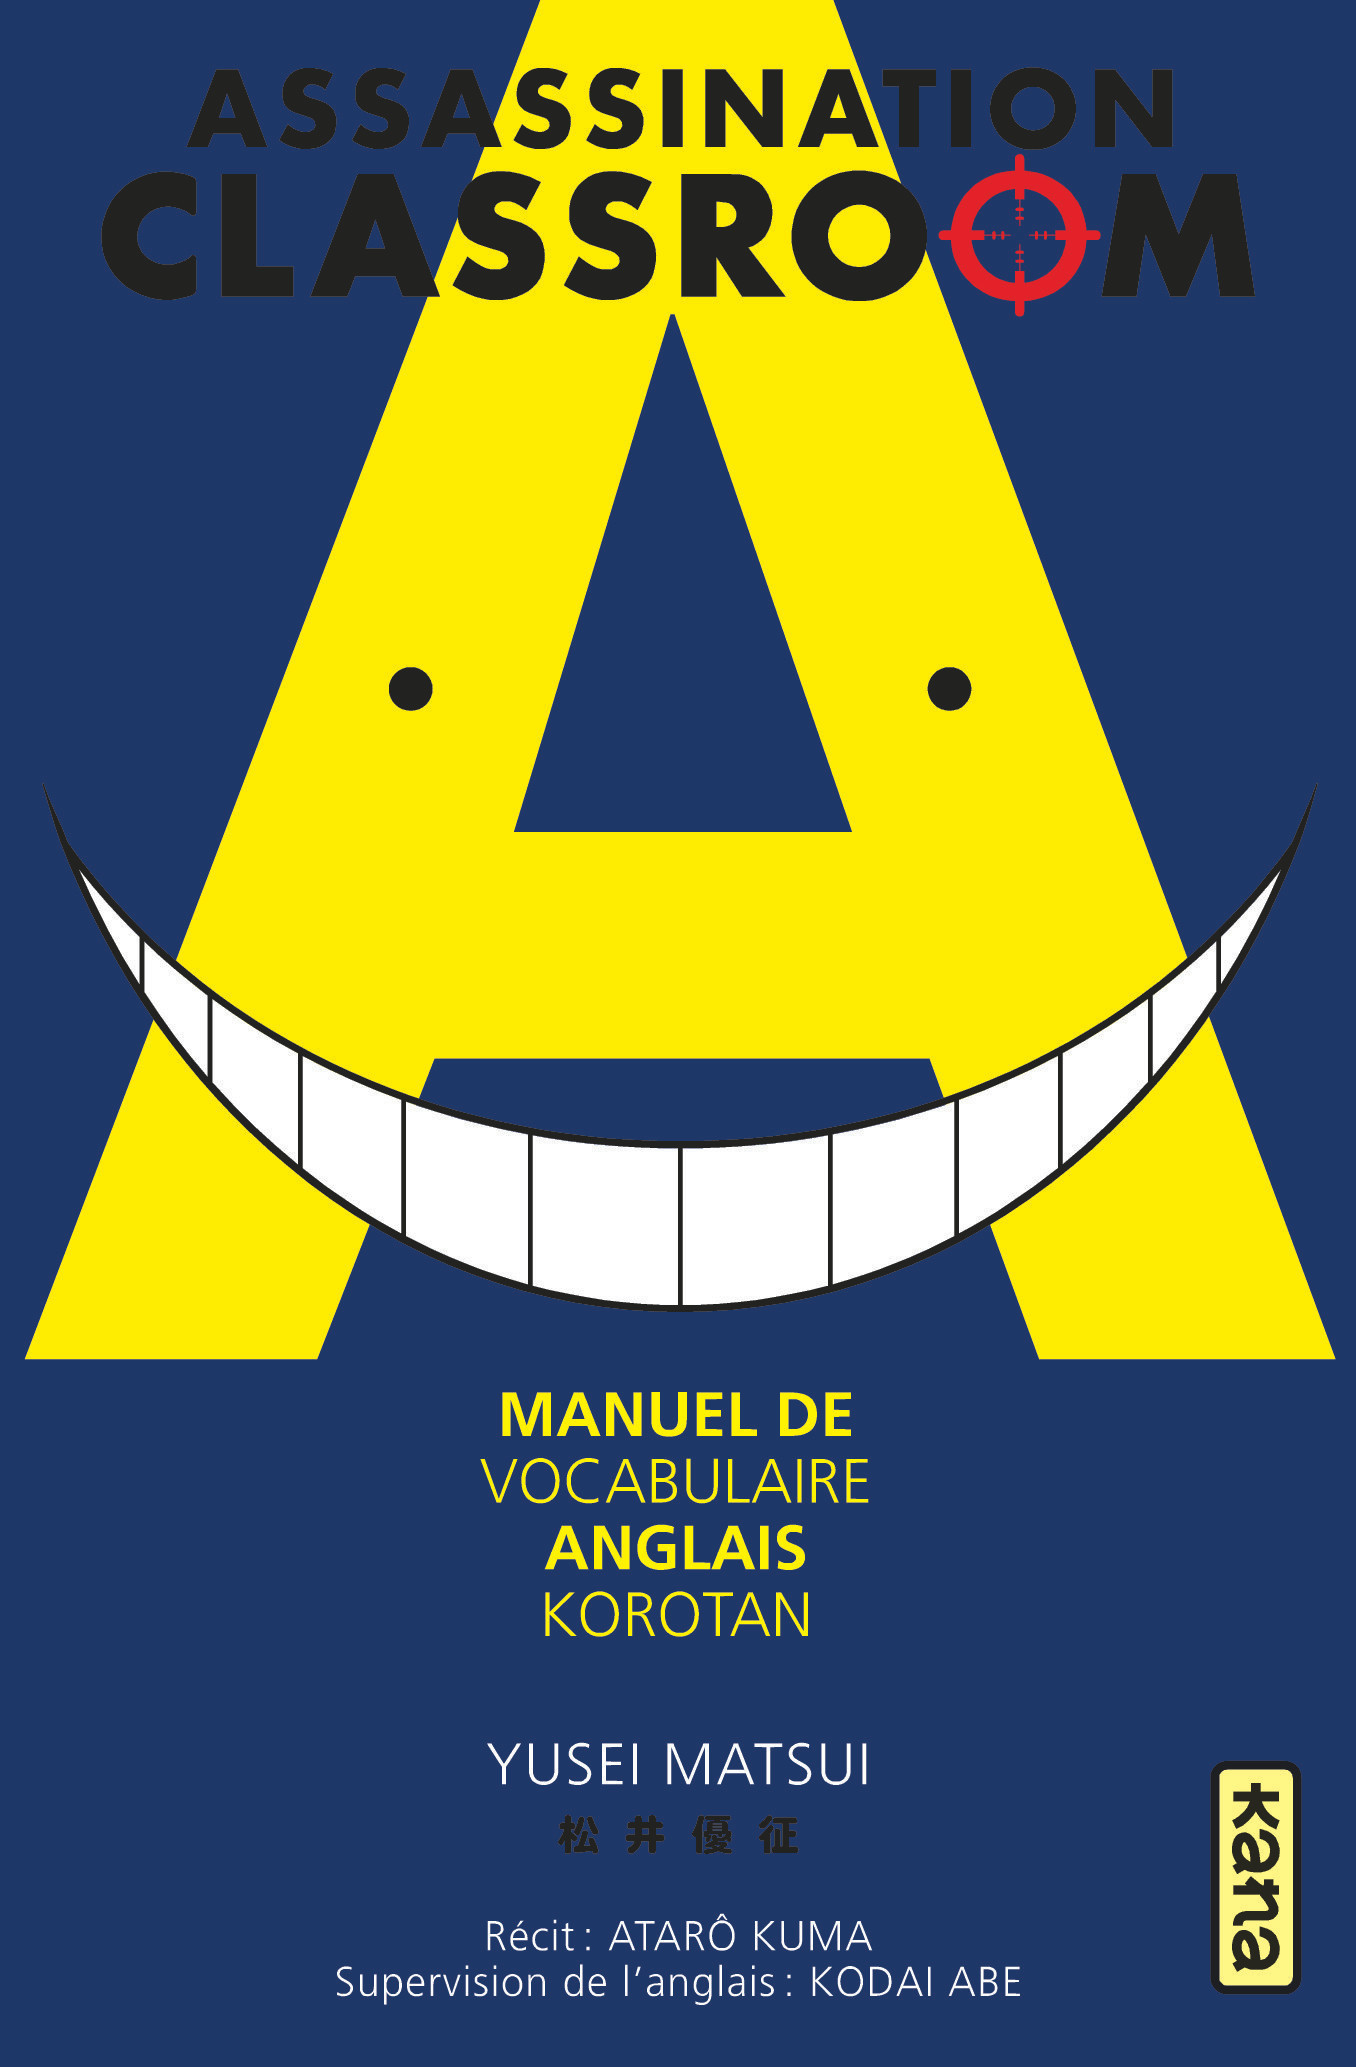 KOROTAN-ASSASSINATION CLASSROOM - MANUEL ANGLAIS